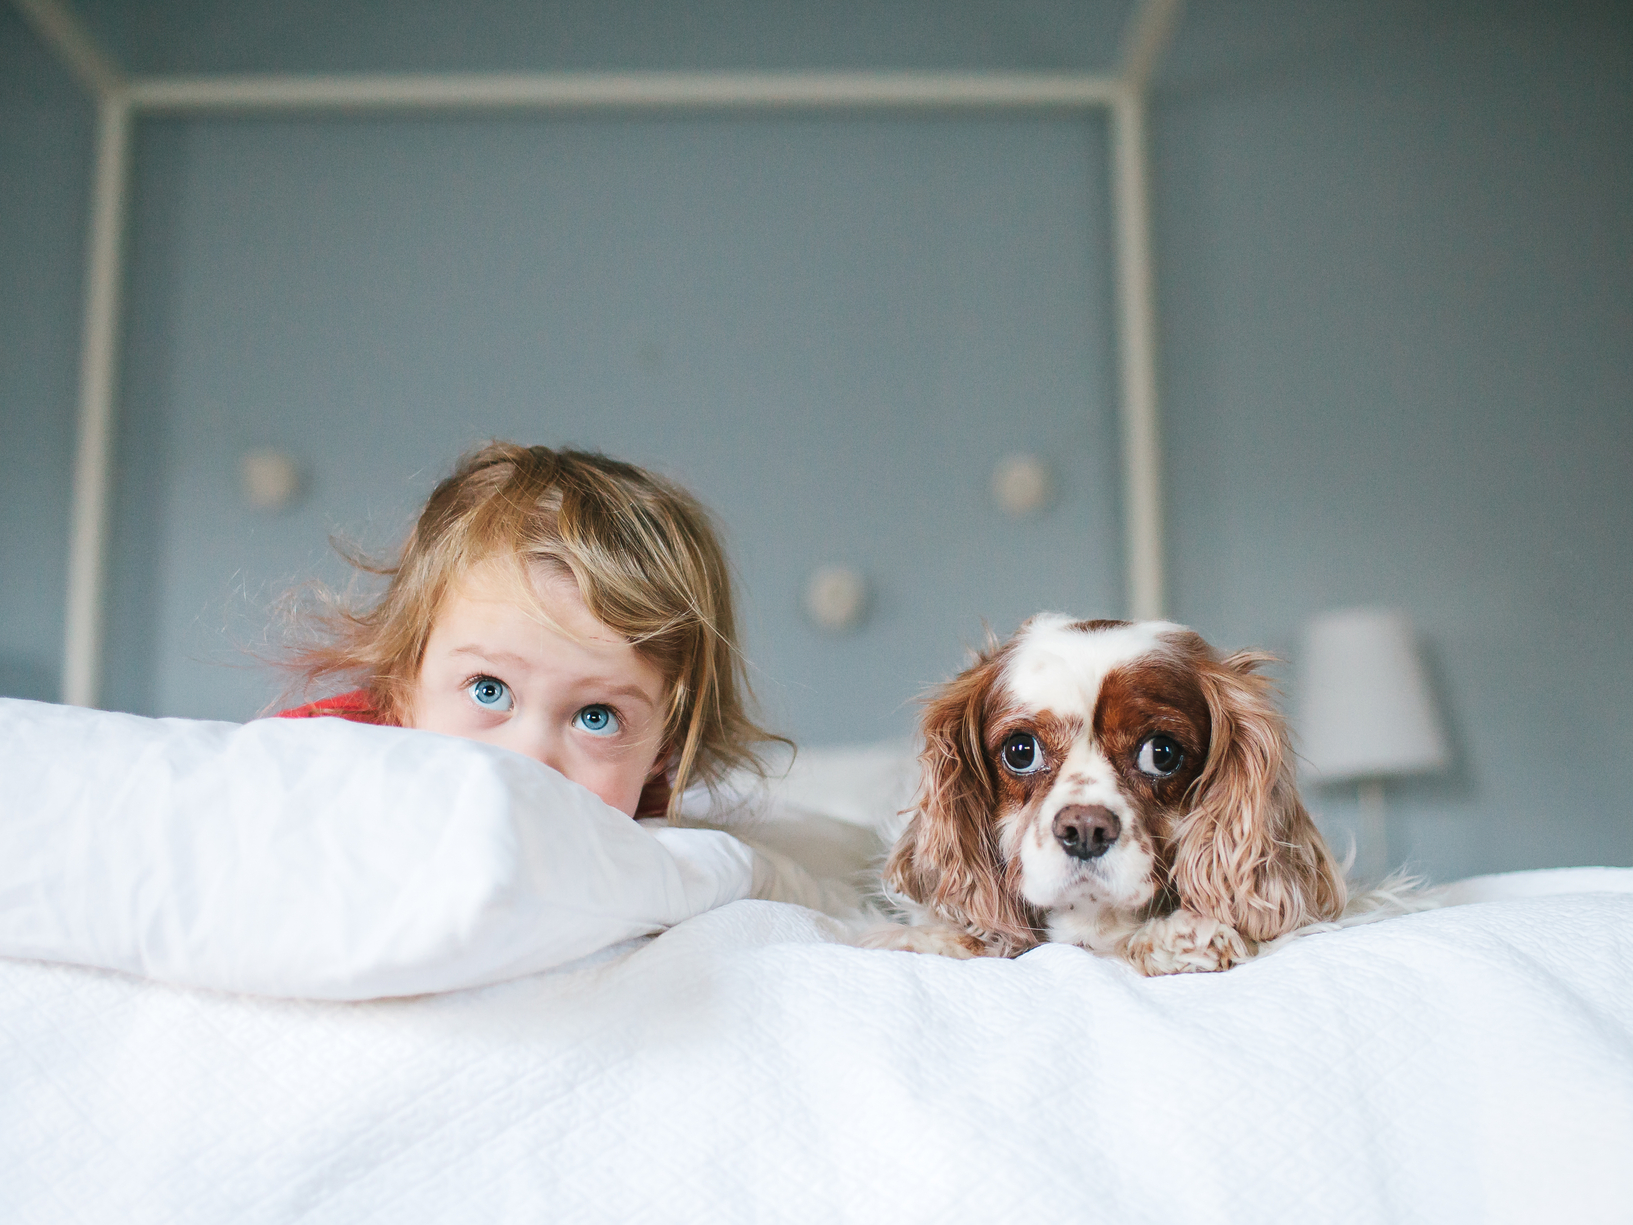 Cute dog photos - young child and her dog